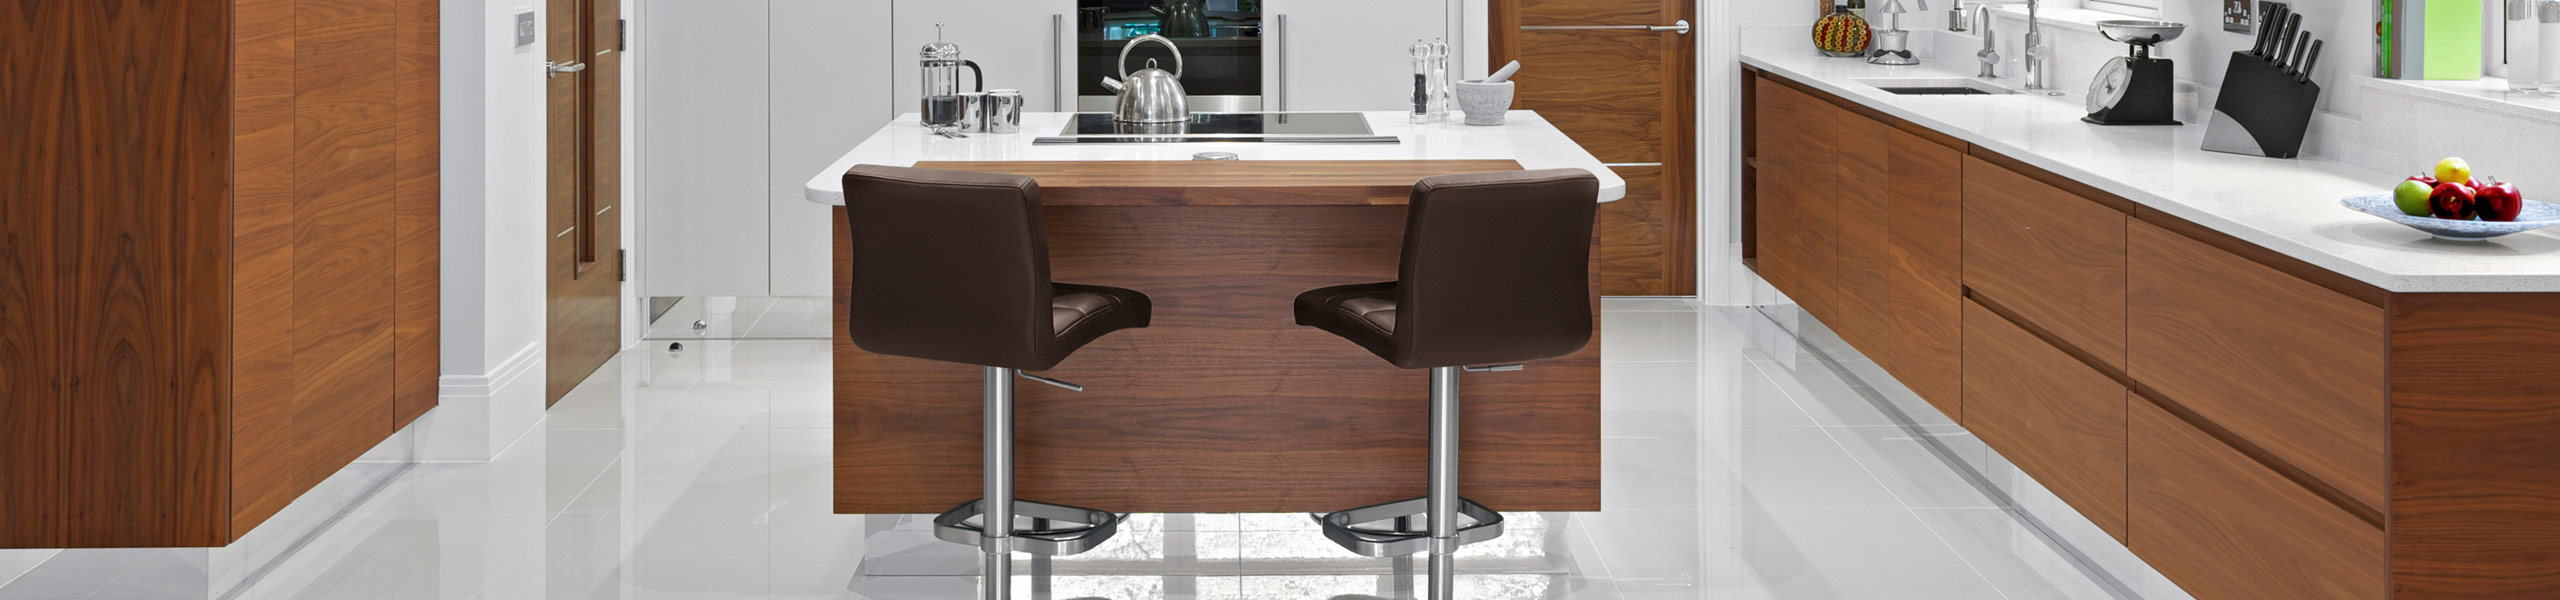 Lush Brushed Steel Bar Stool Brown Video Banner